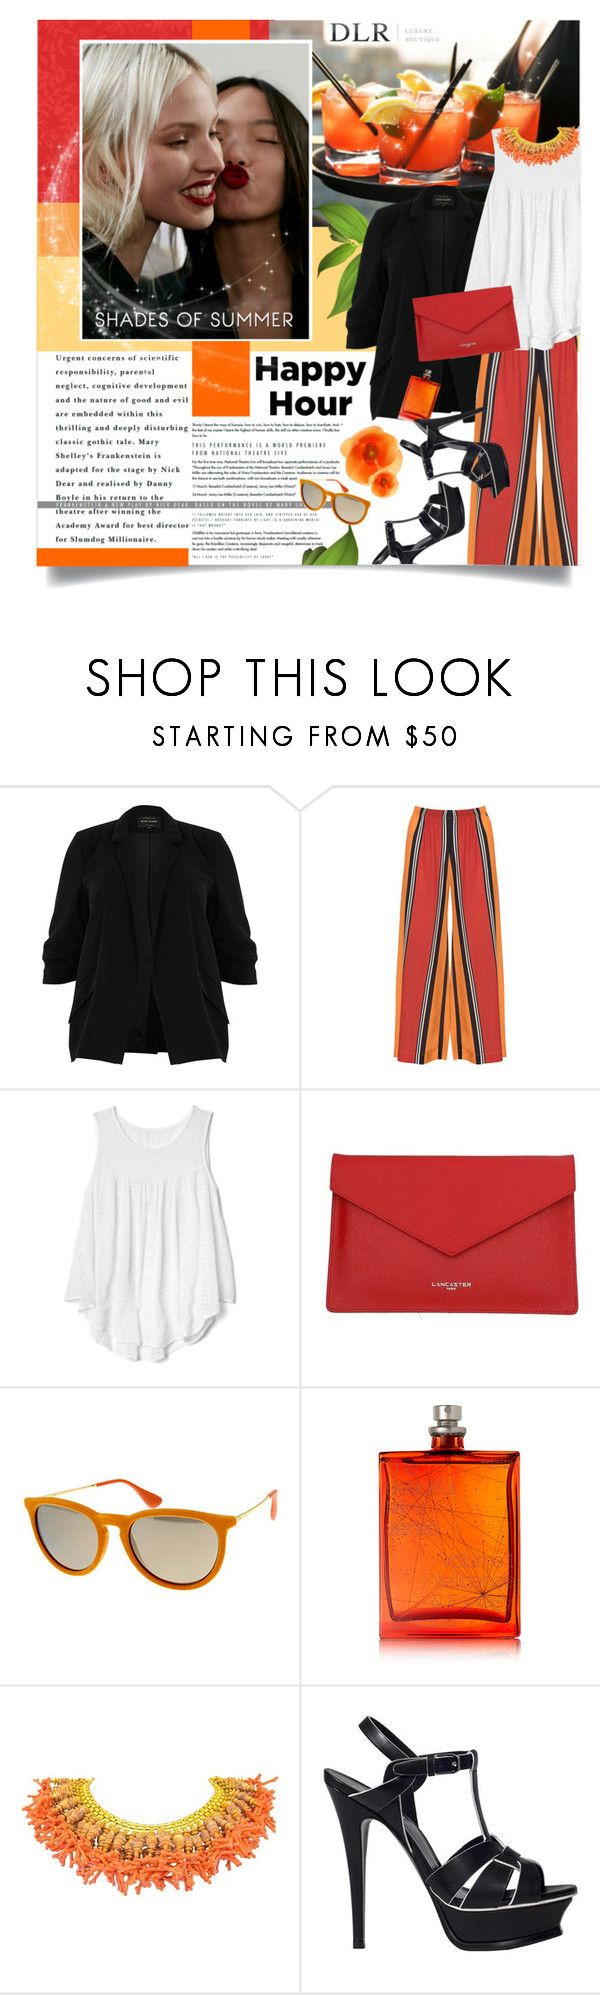 """SALES! DLRBOUTIQUE"" by palmanana ❤ liked on Polyvore featuring River Island, Mat, MaxMara, Gap, Lancaster, Ray-Ban, The Beautiful Mind Series, Yves Saint Laurent and happyhour"